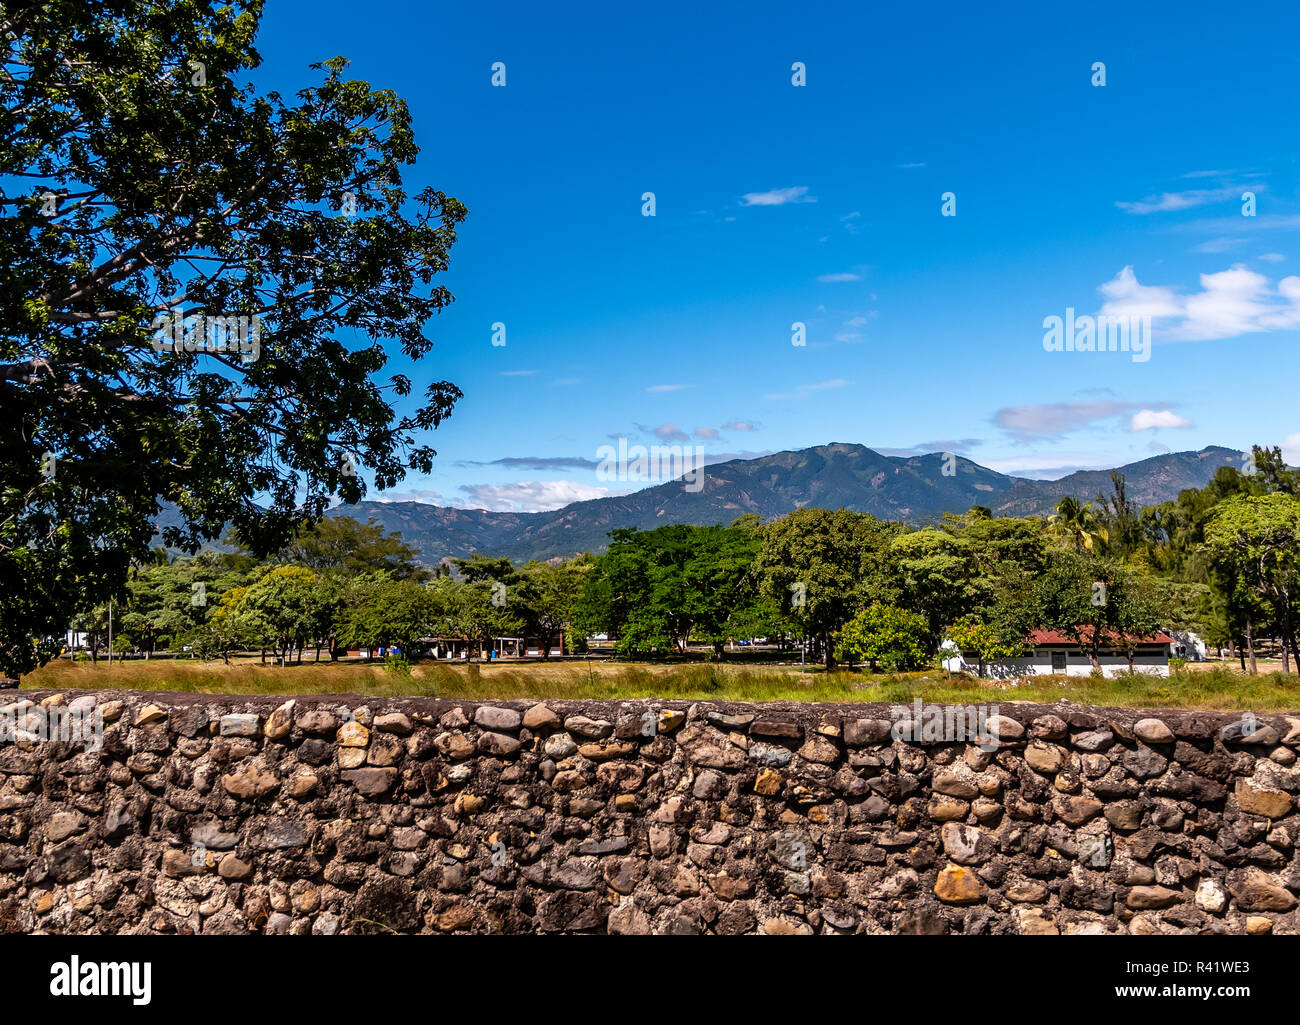 Guatemalan military base - Stock Image